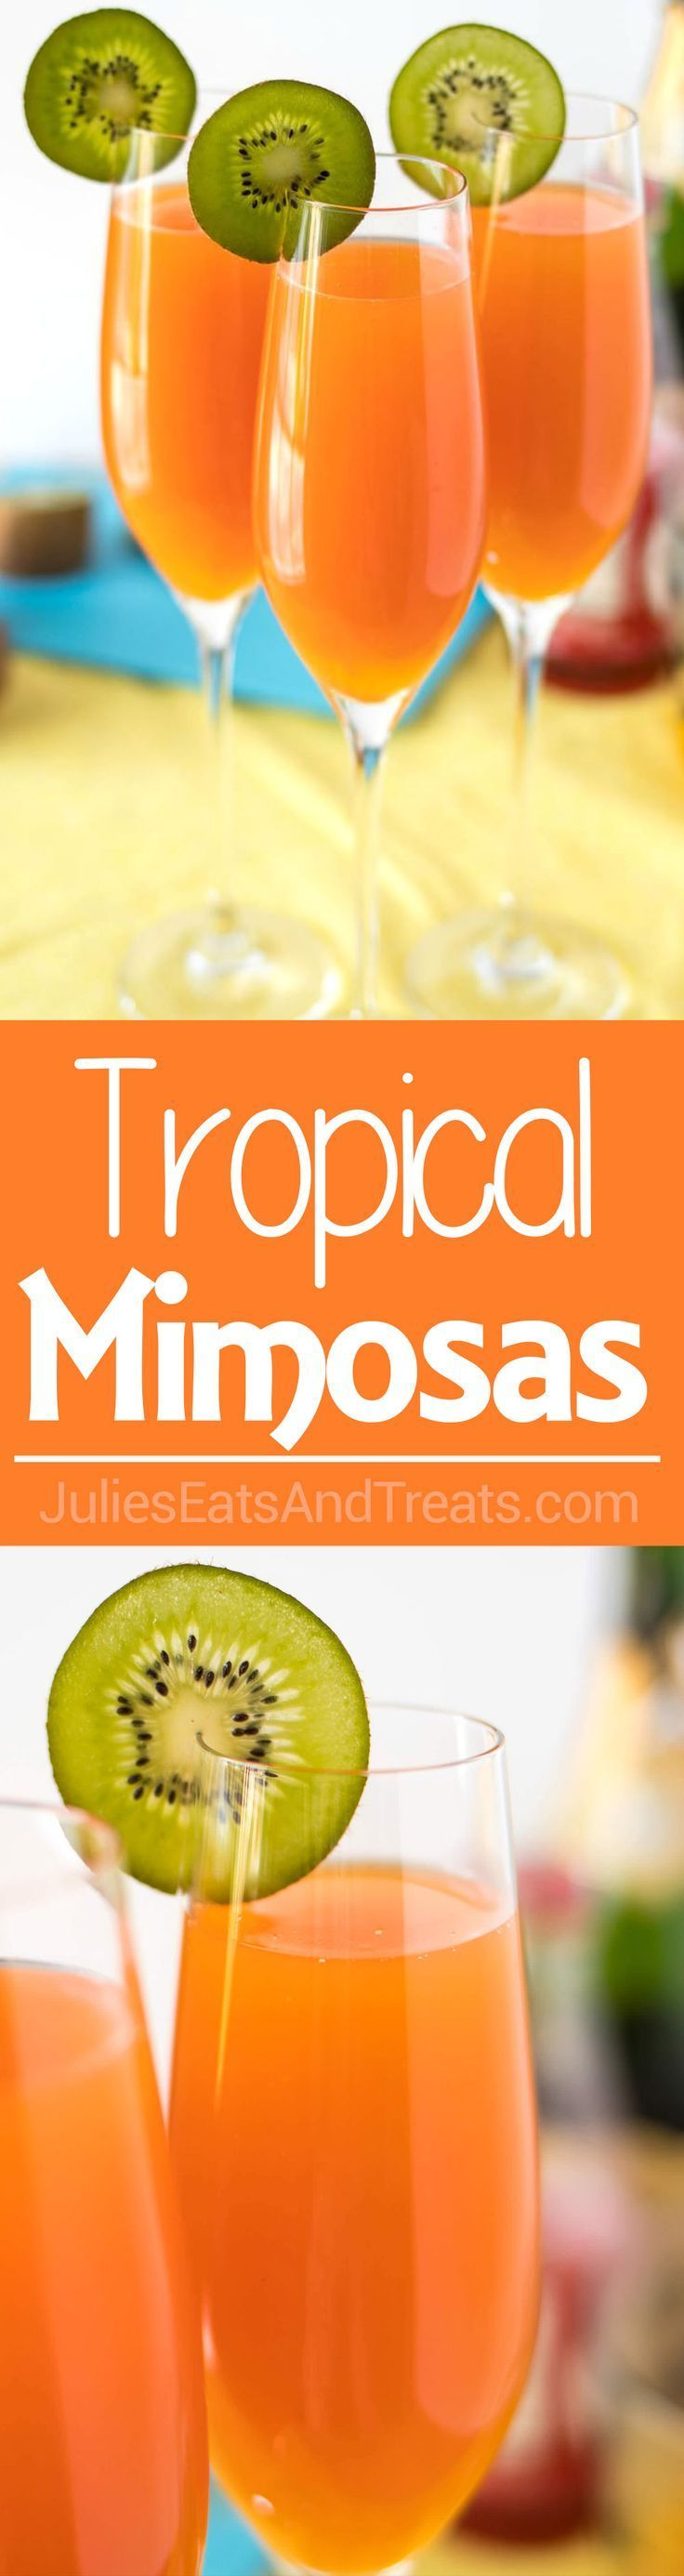 Tropical Mimosas - The classic brunch drink, given a tropical twist with the addition of mango, pineapple, and a splash of grenadine! ~ http://www.julieseatsandtreats.com